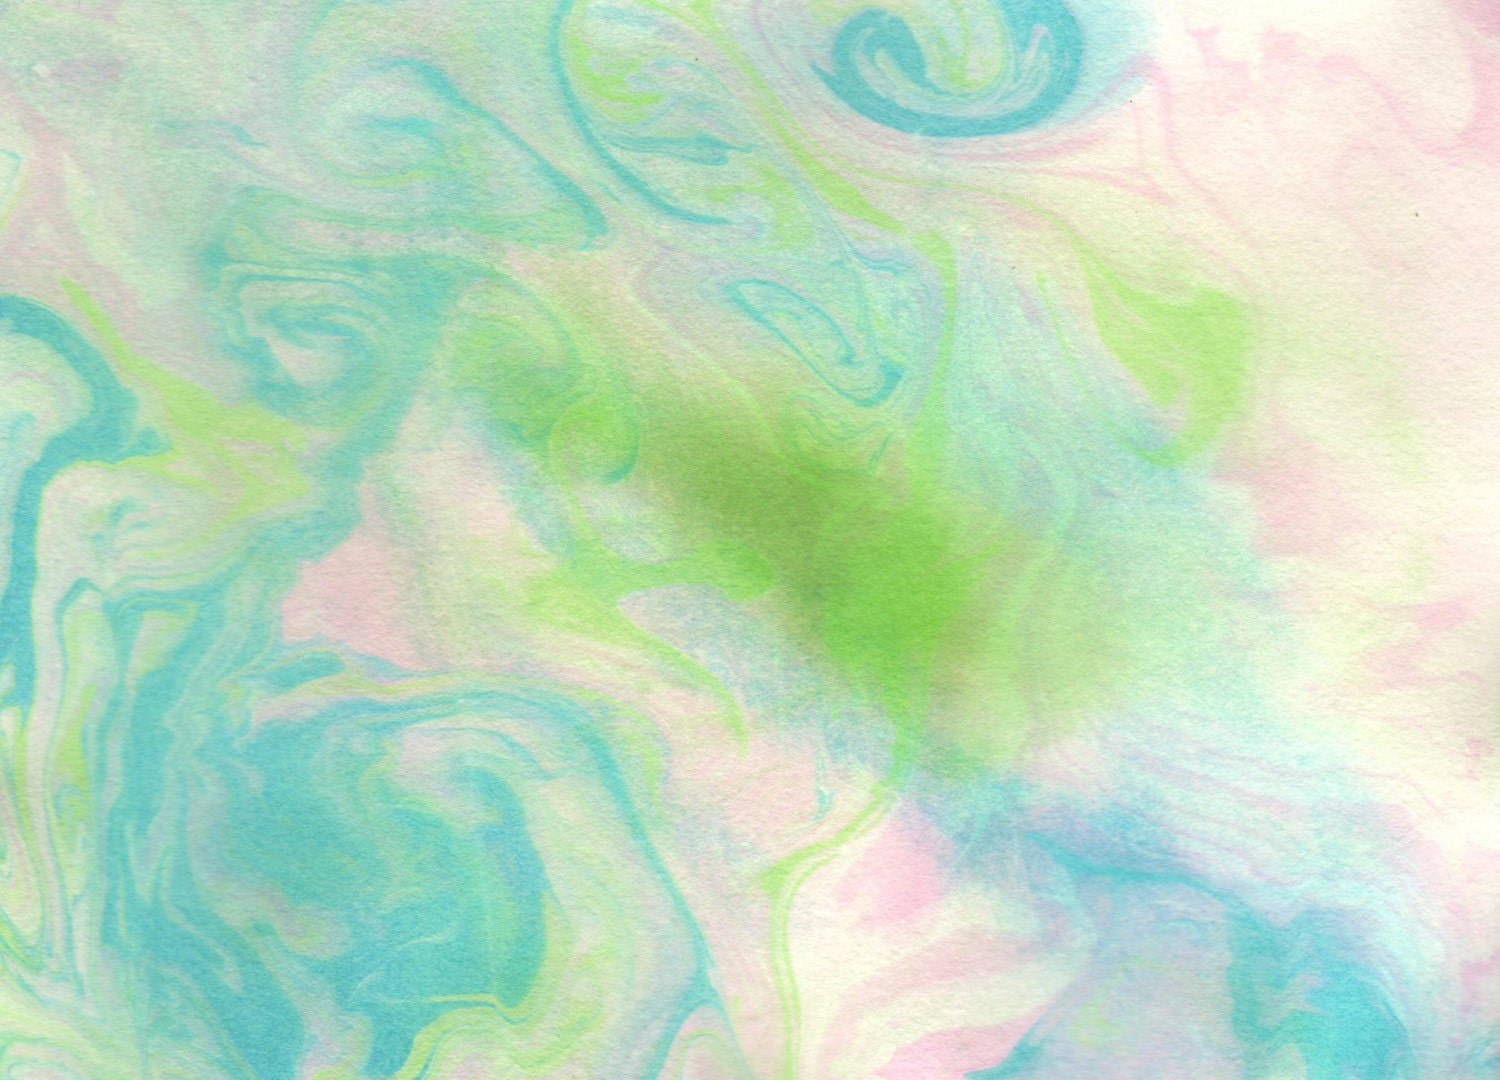 "Original Painting - 5"" x 7"" - Abstract - Blue, Green, Pink and White - 2014-72 - AidforAbby"